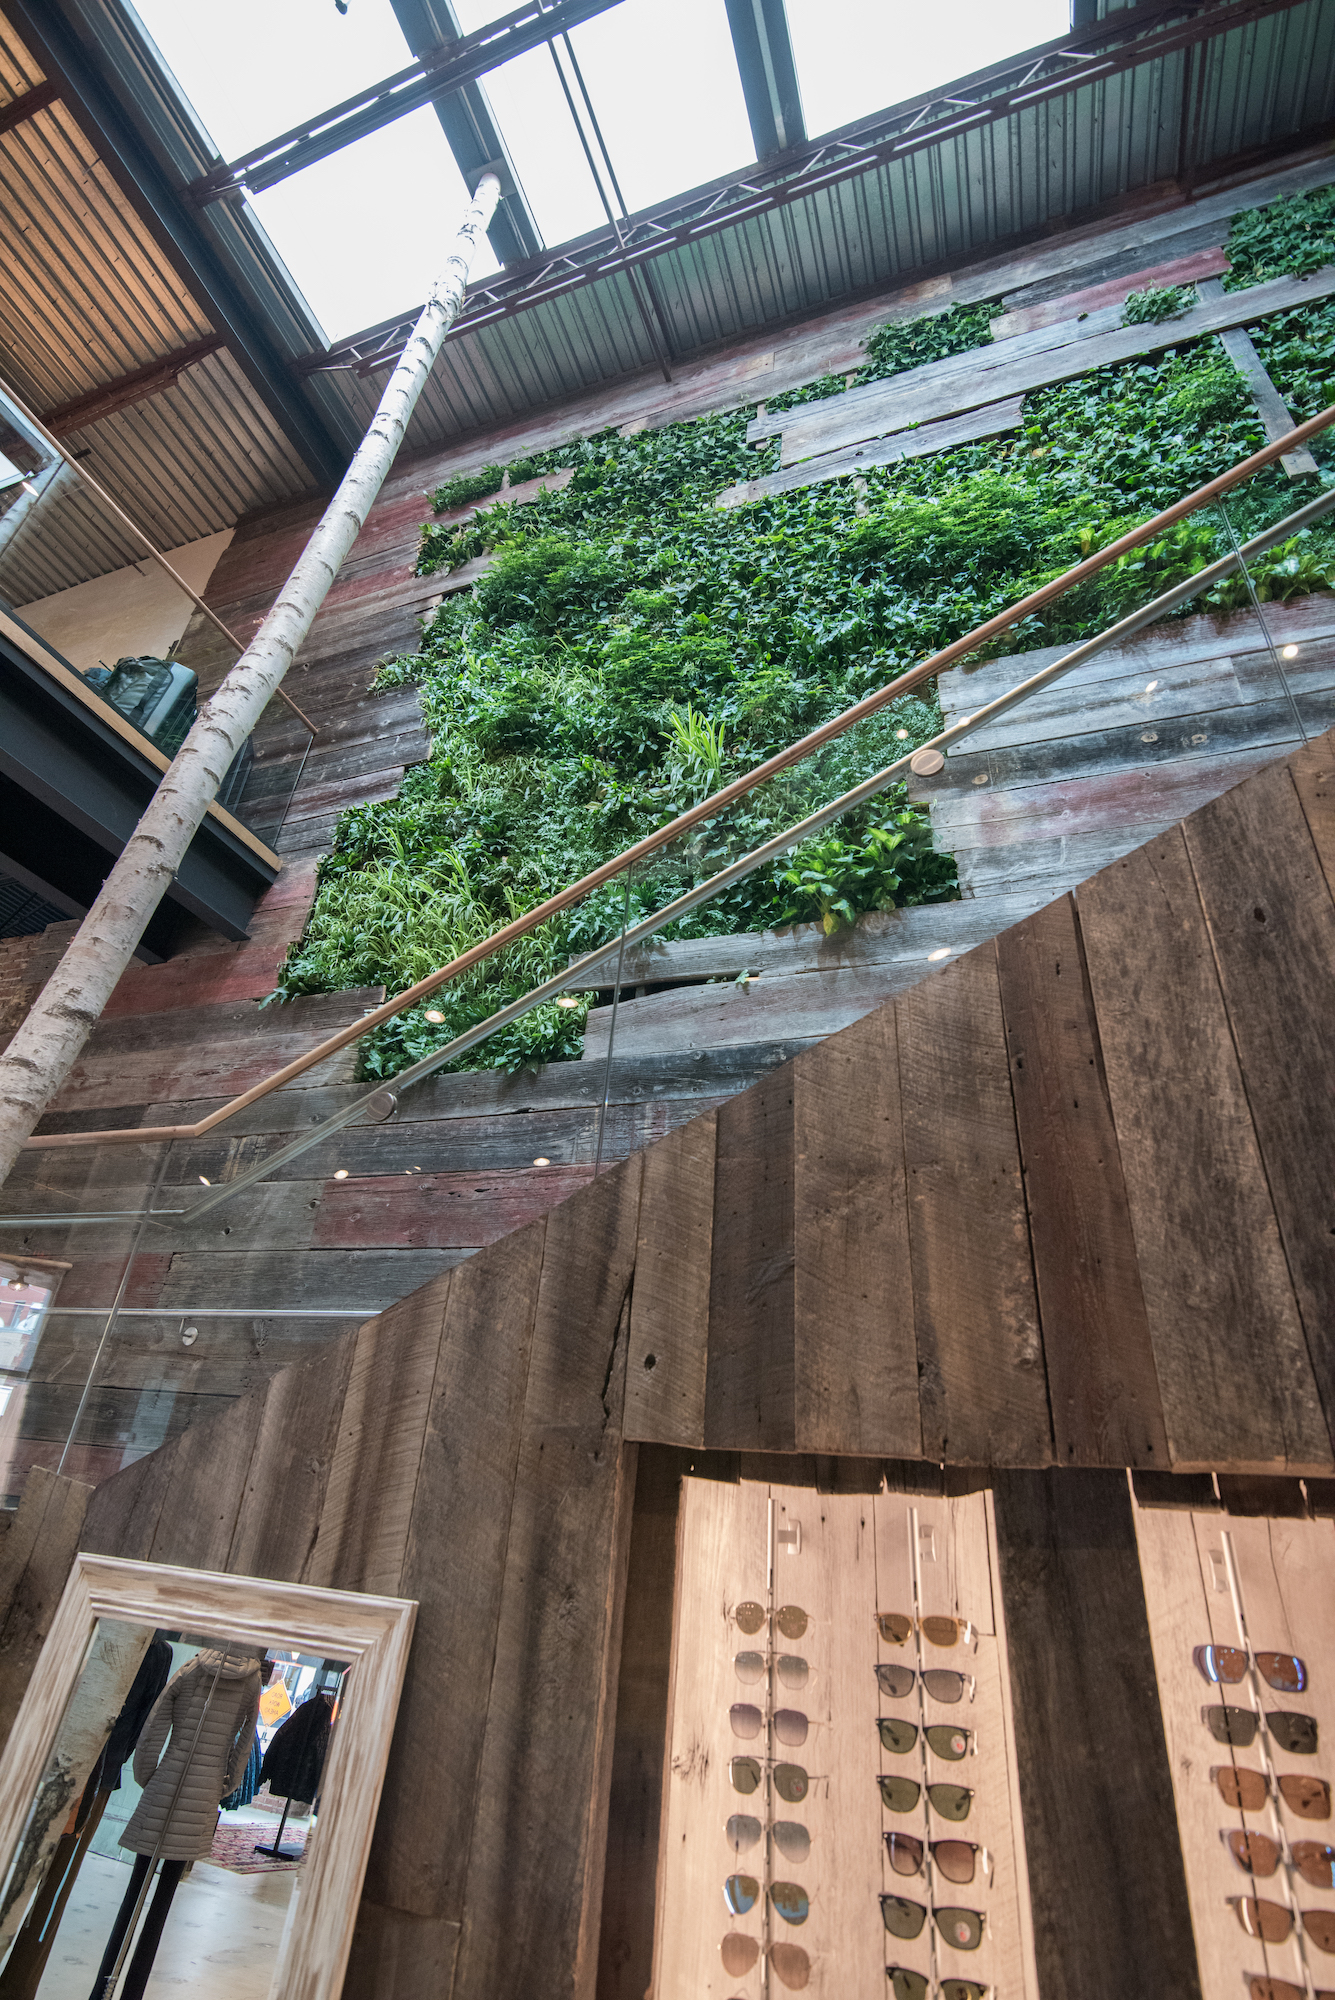 Outerwear retail store Denali in Providence, Rhode Island, featuring plants on a live wall sourced by Rousseau Reclaimed Lumber & Flooring